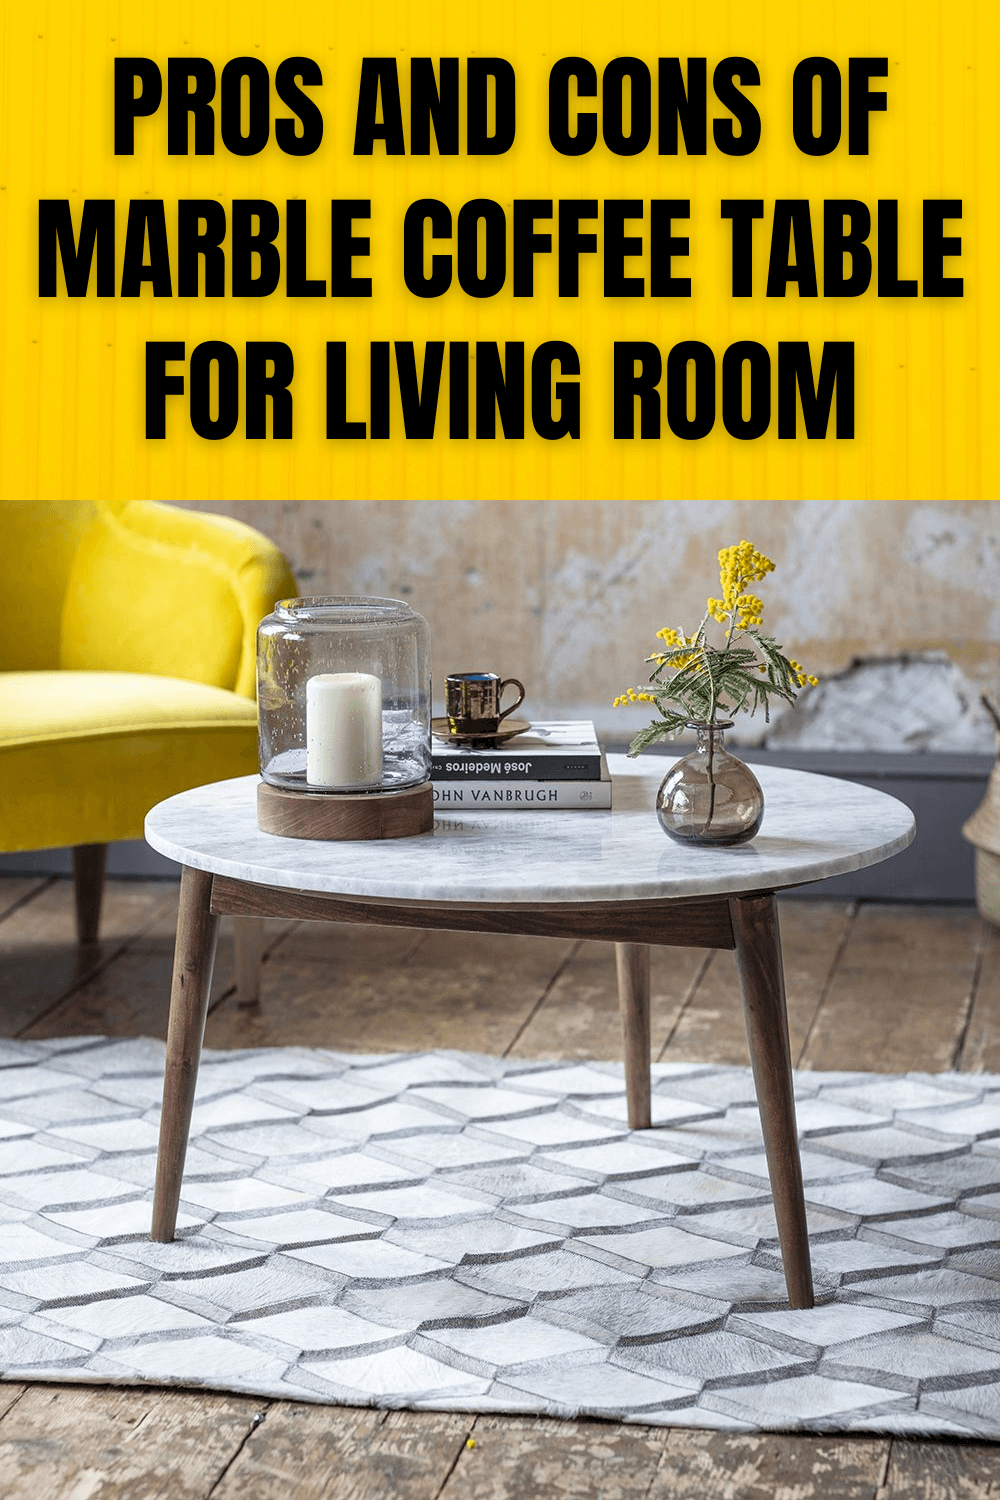 PROS AND CONS OF MARBLE COFFEE TABLE FOR LIVING ROOM